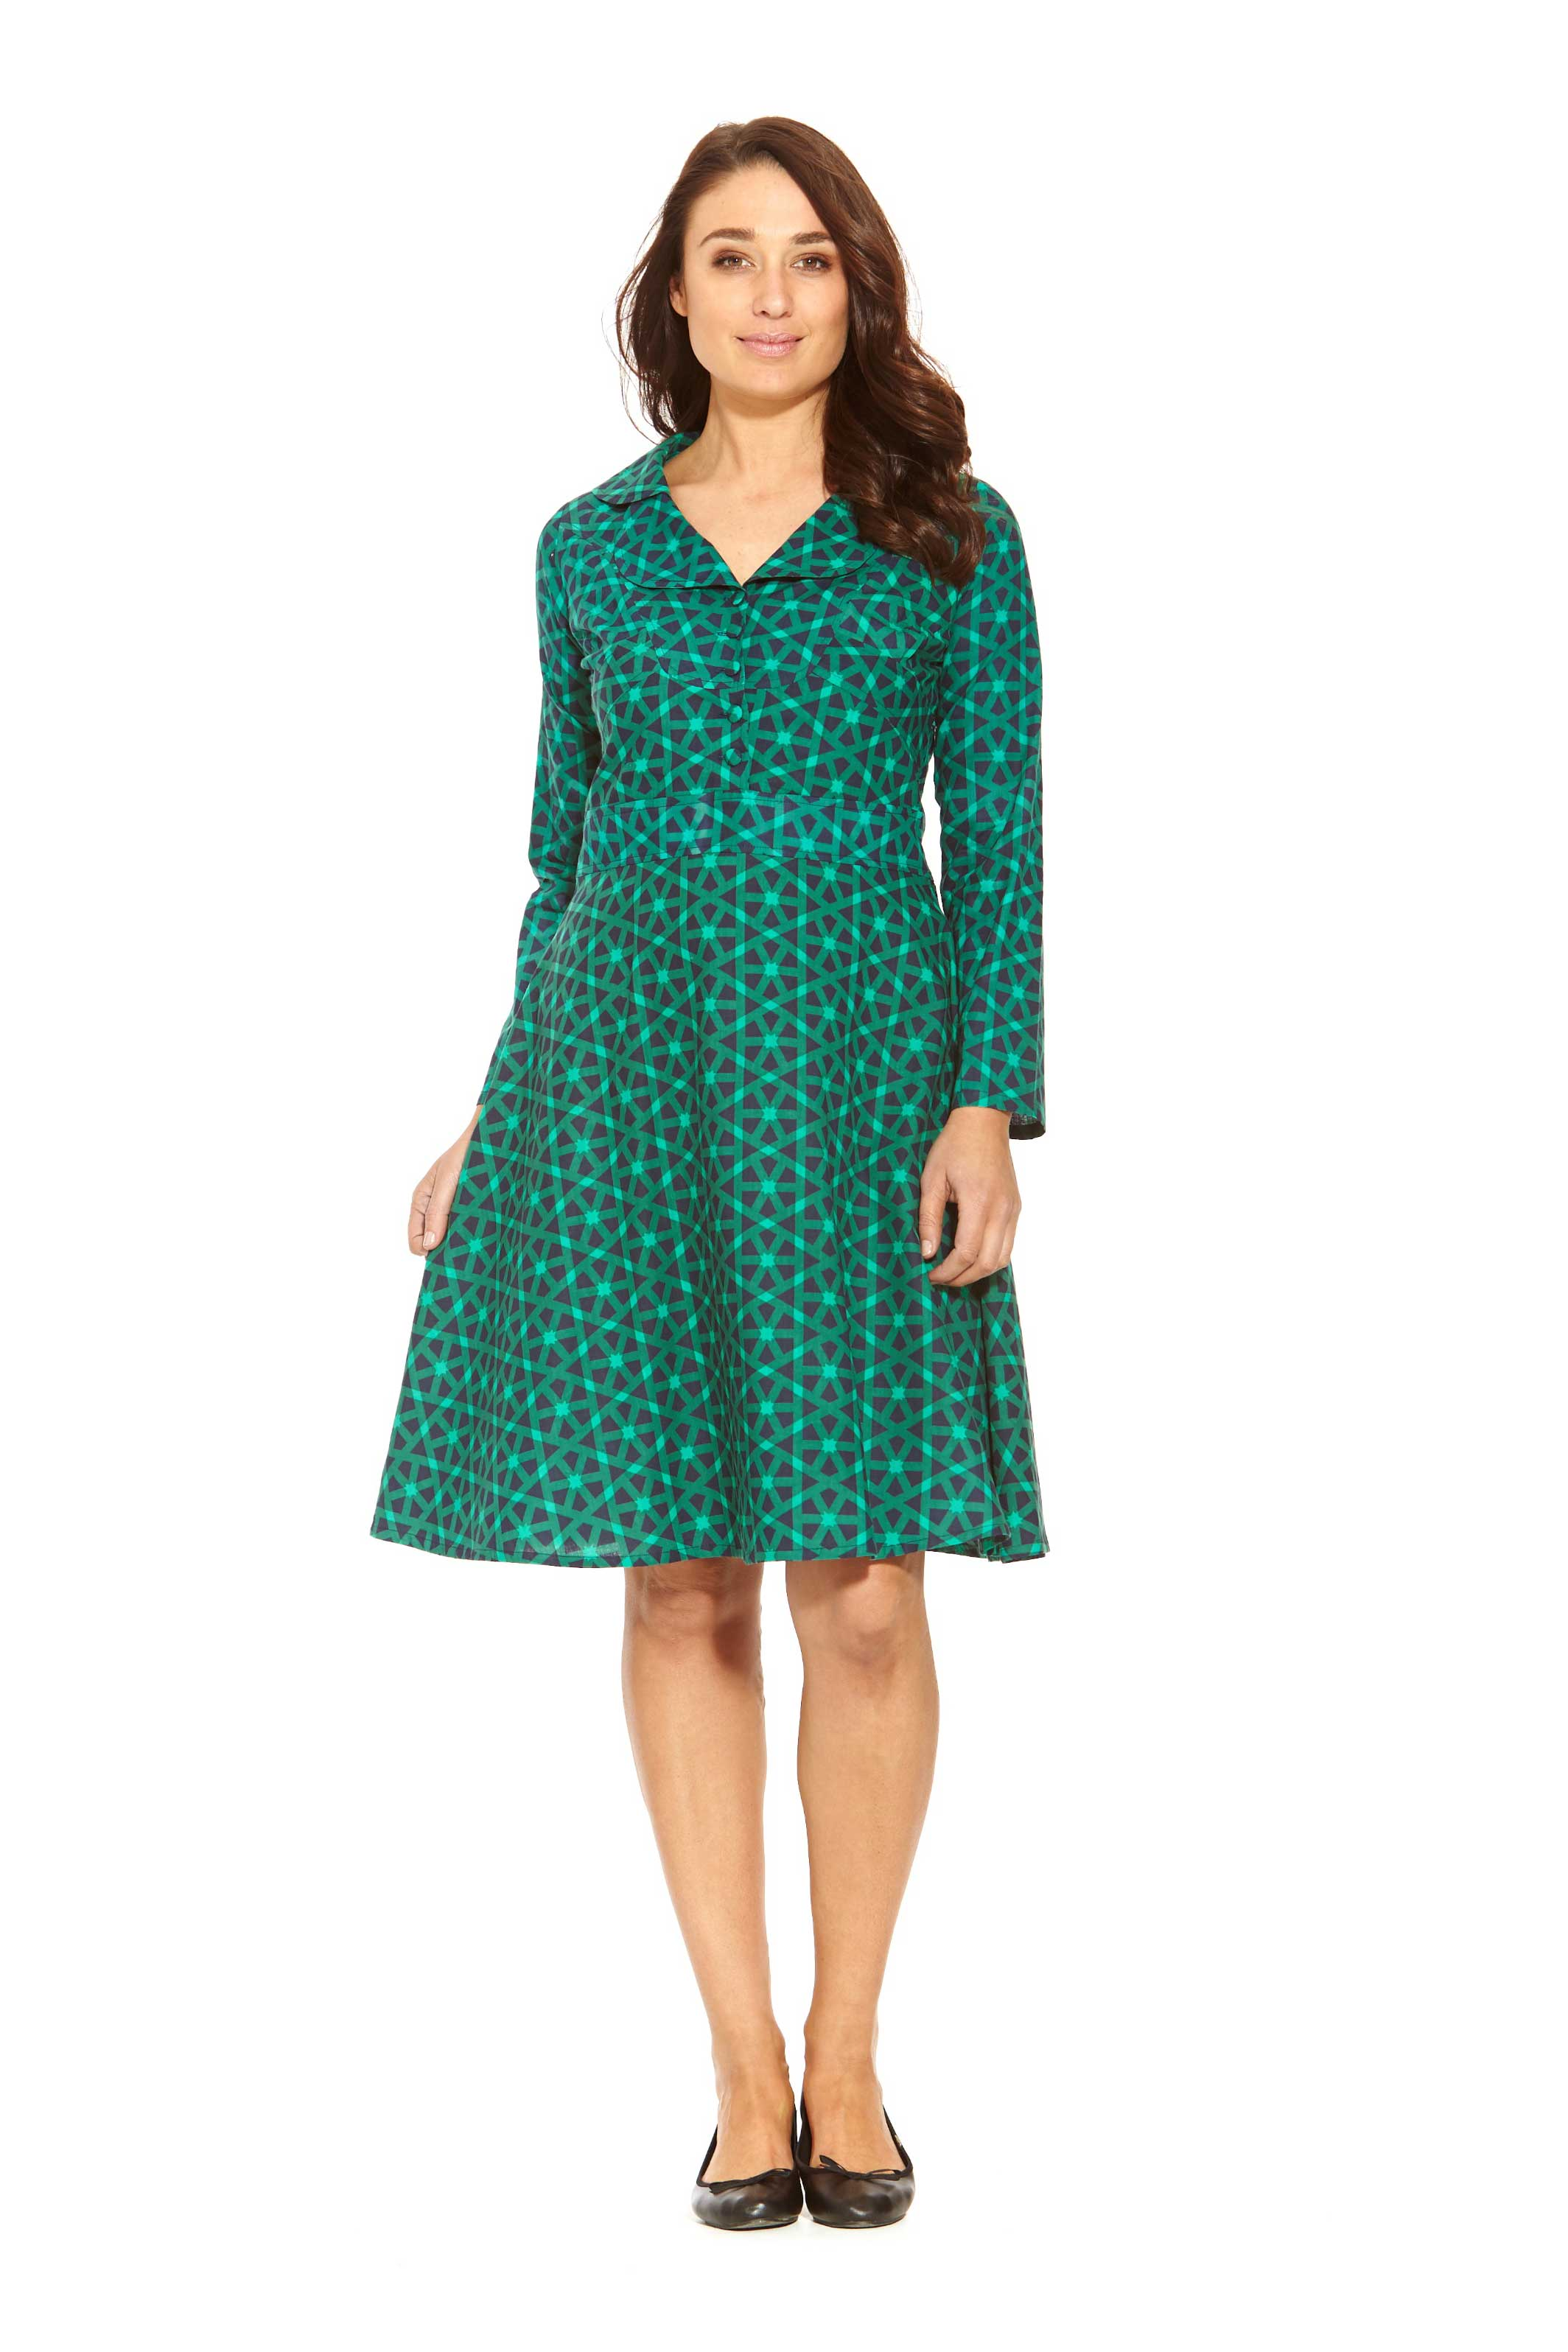 Quite a few designers tailor ladies dresses fusing a mix of cotton and polyester to make the fabric tougher and shinier. For a stretched fit, lycra is also added to the mix. There are lots more to pick from at StalkBuyLove when it comes to online shopping in India for your preferred dress.